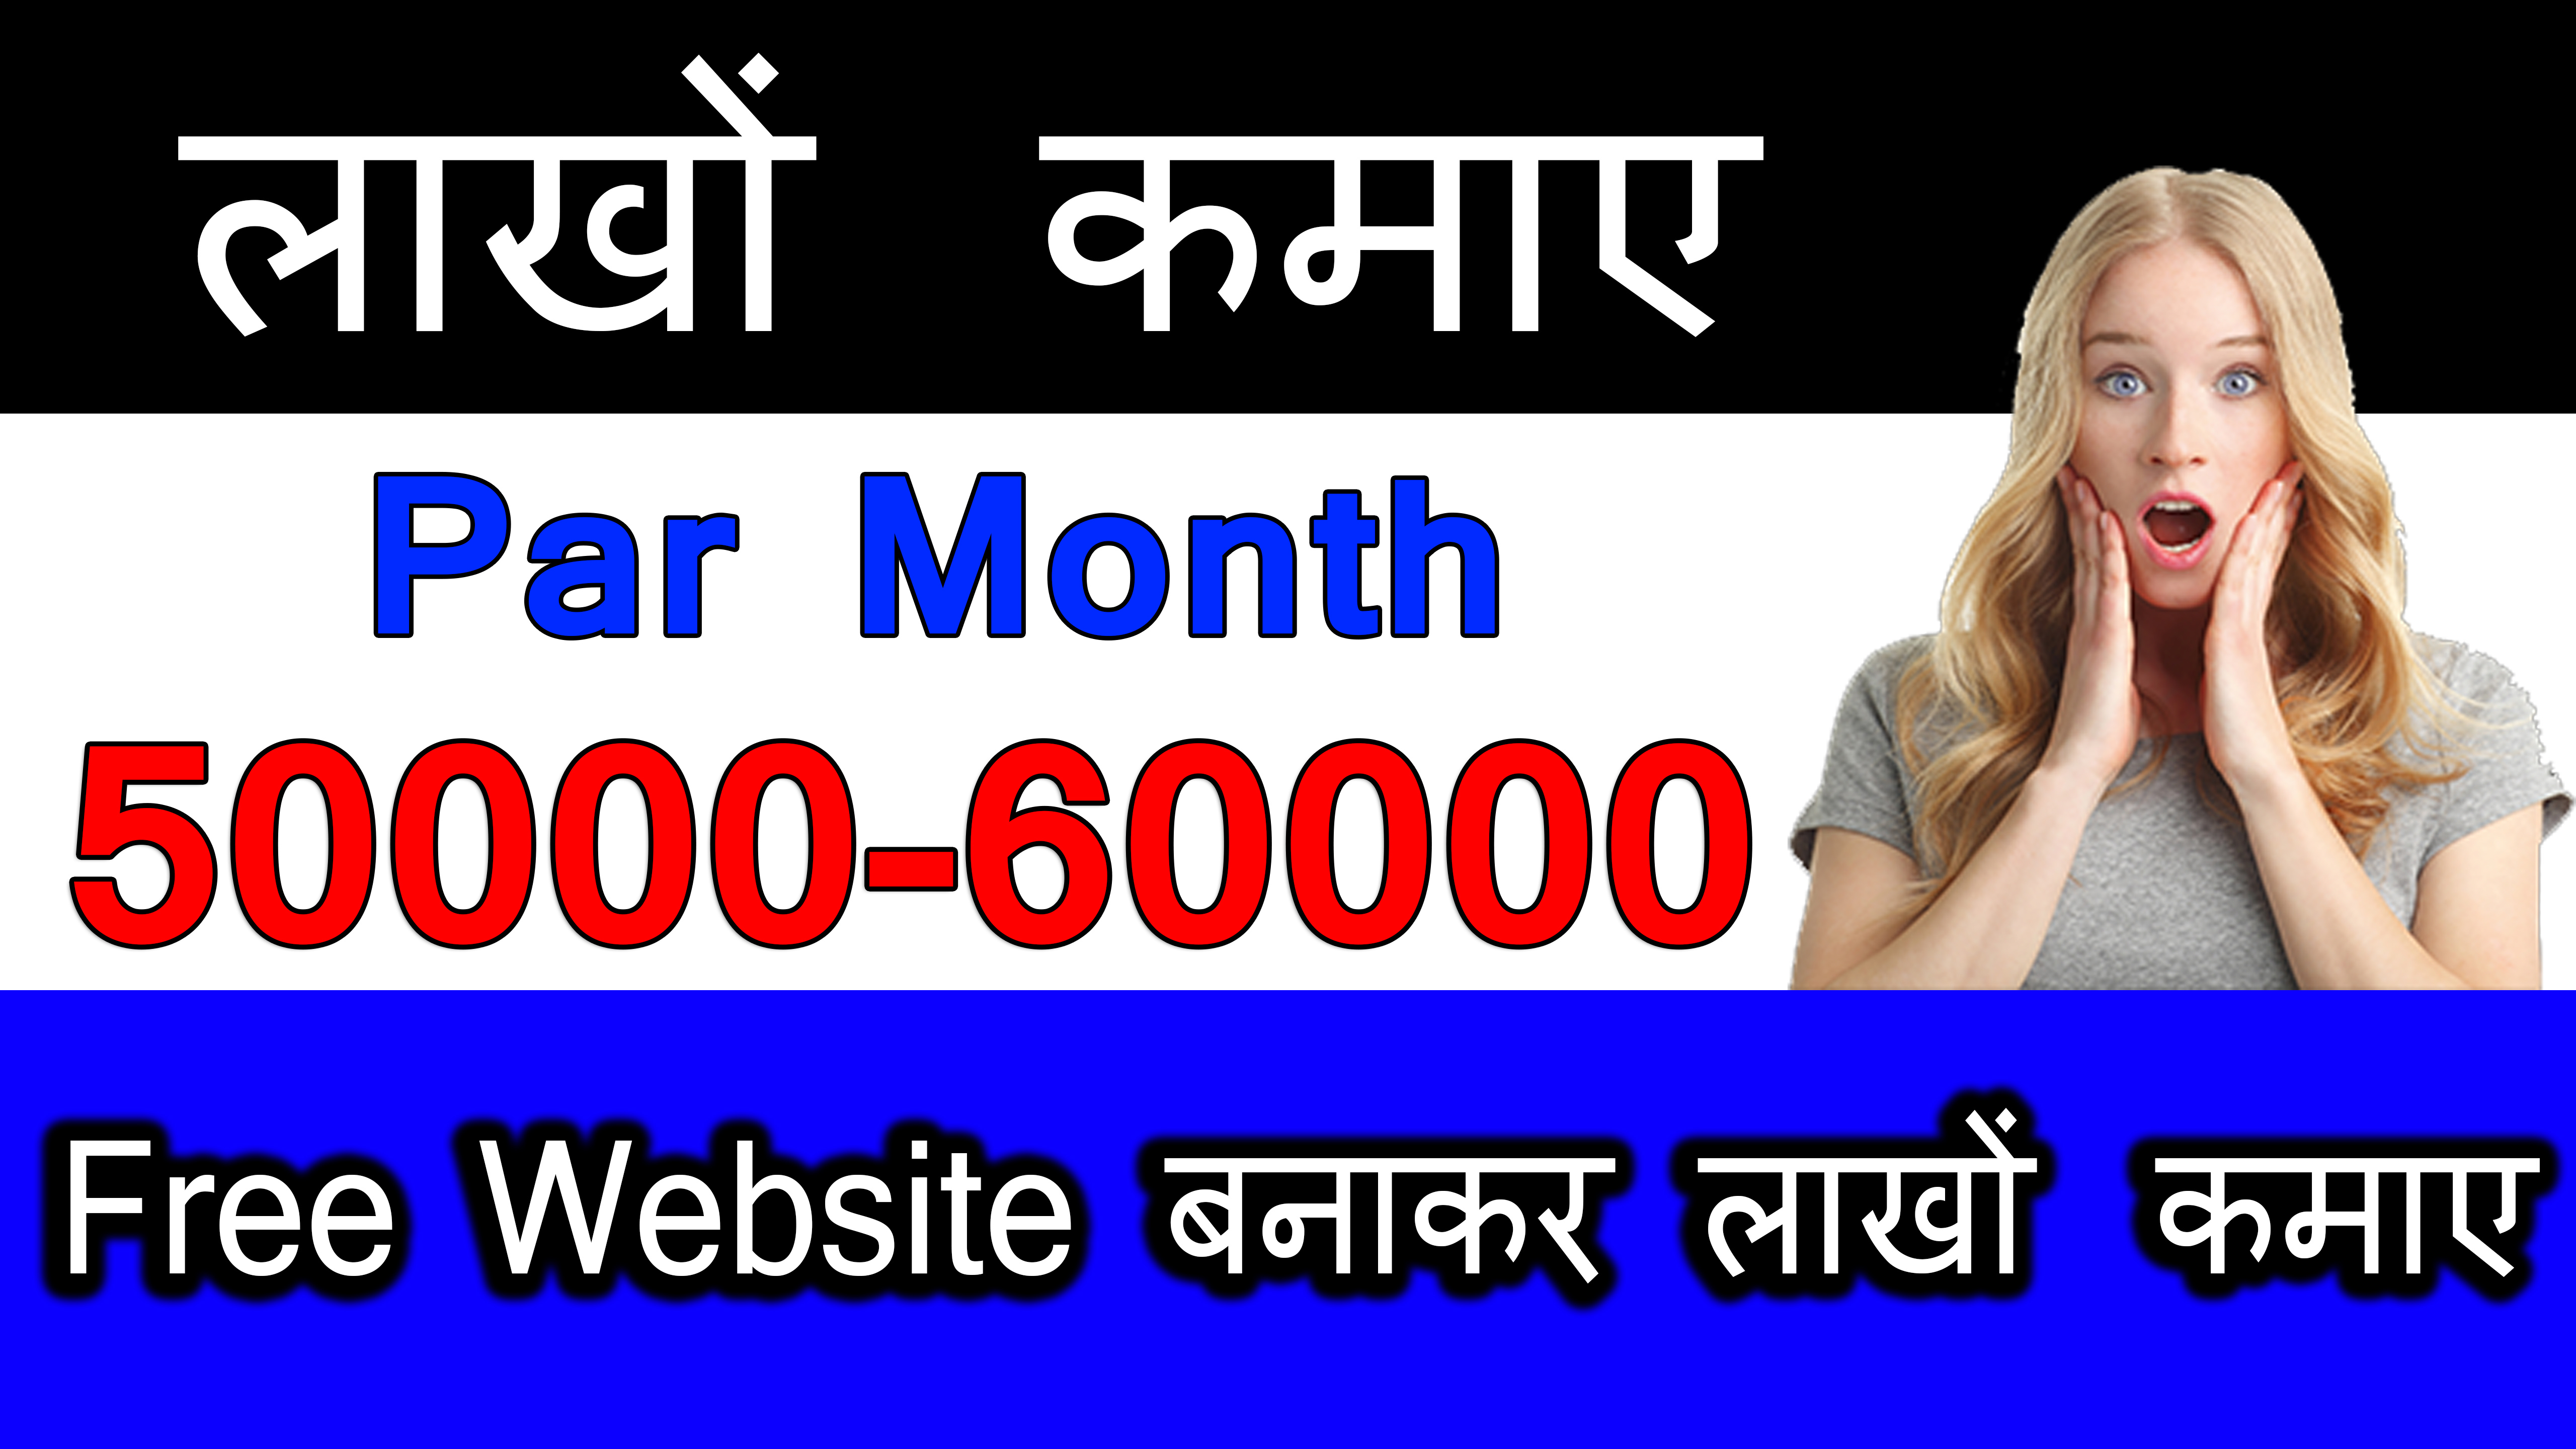 How To Make A Website For Free, How To Make Money Online